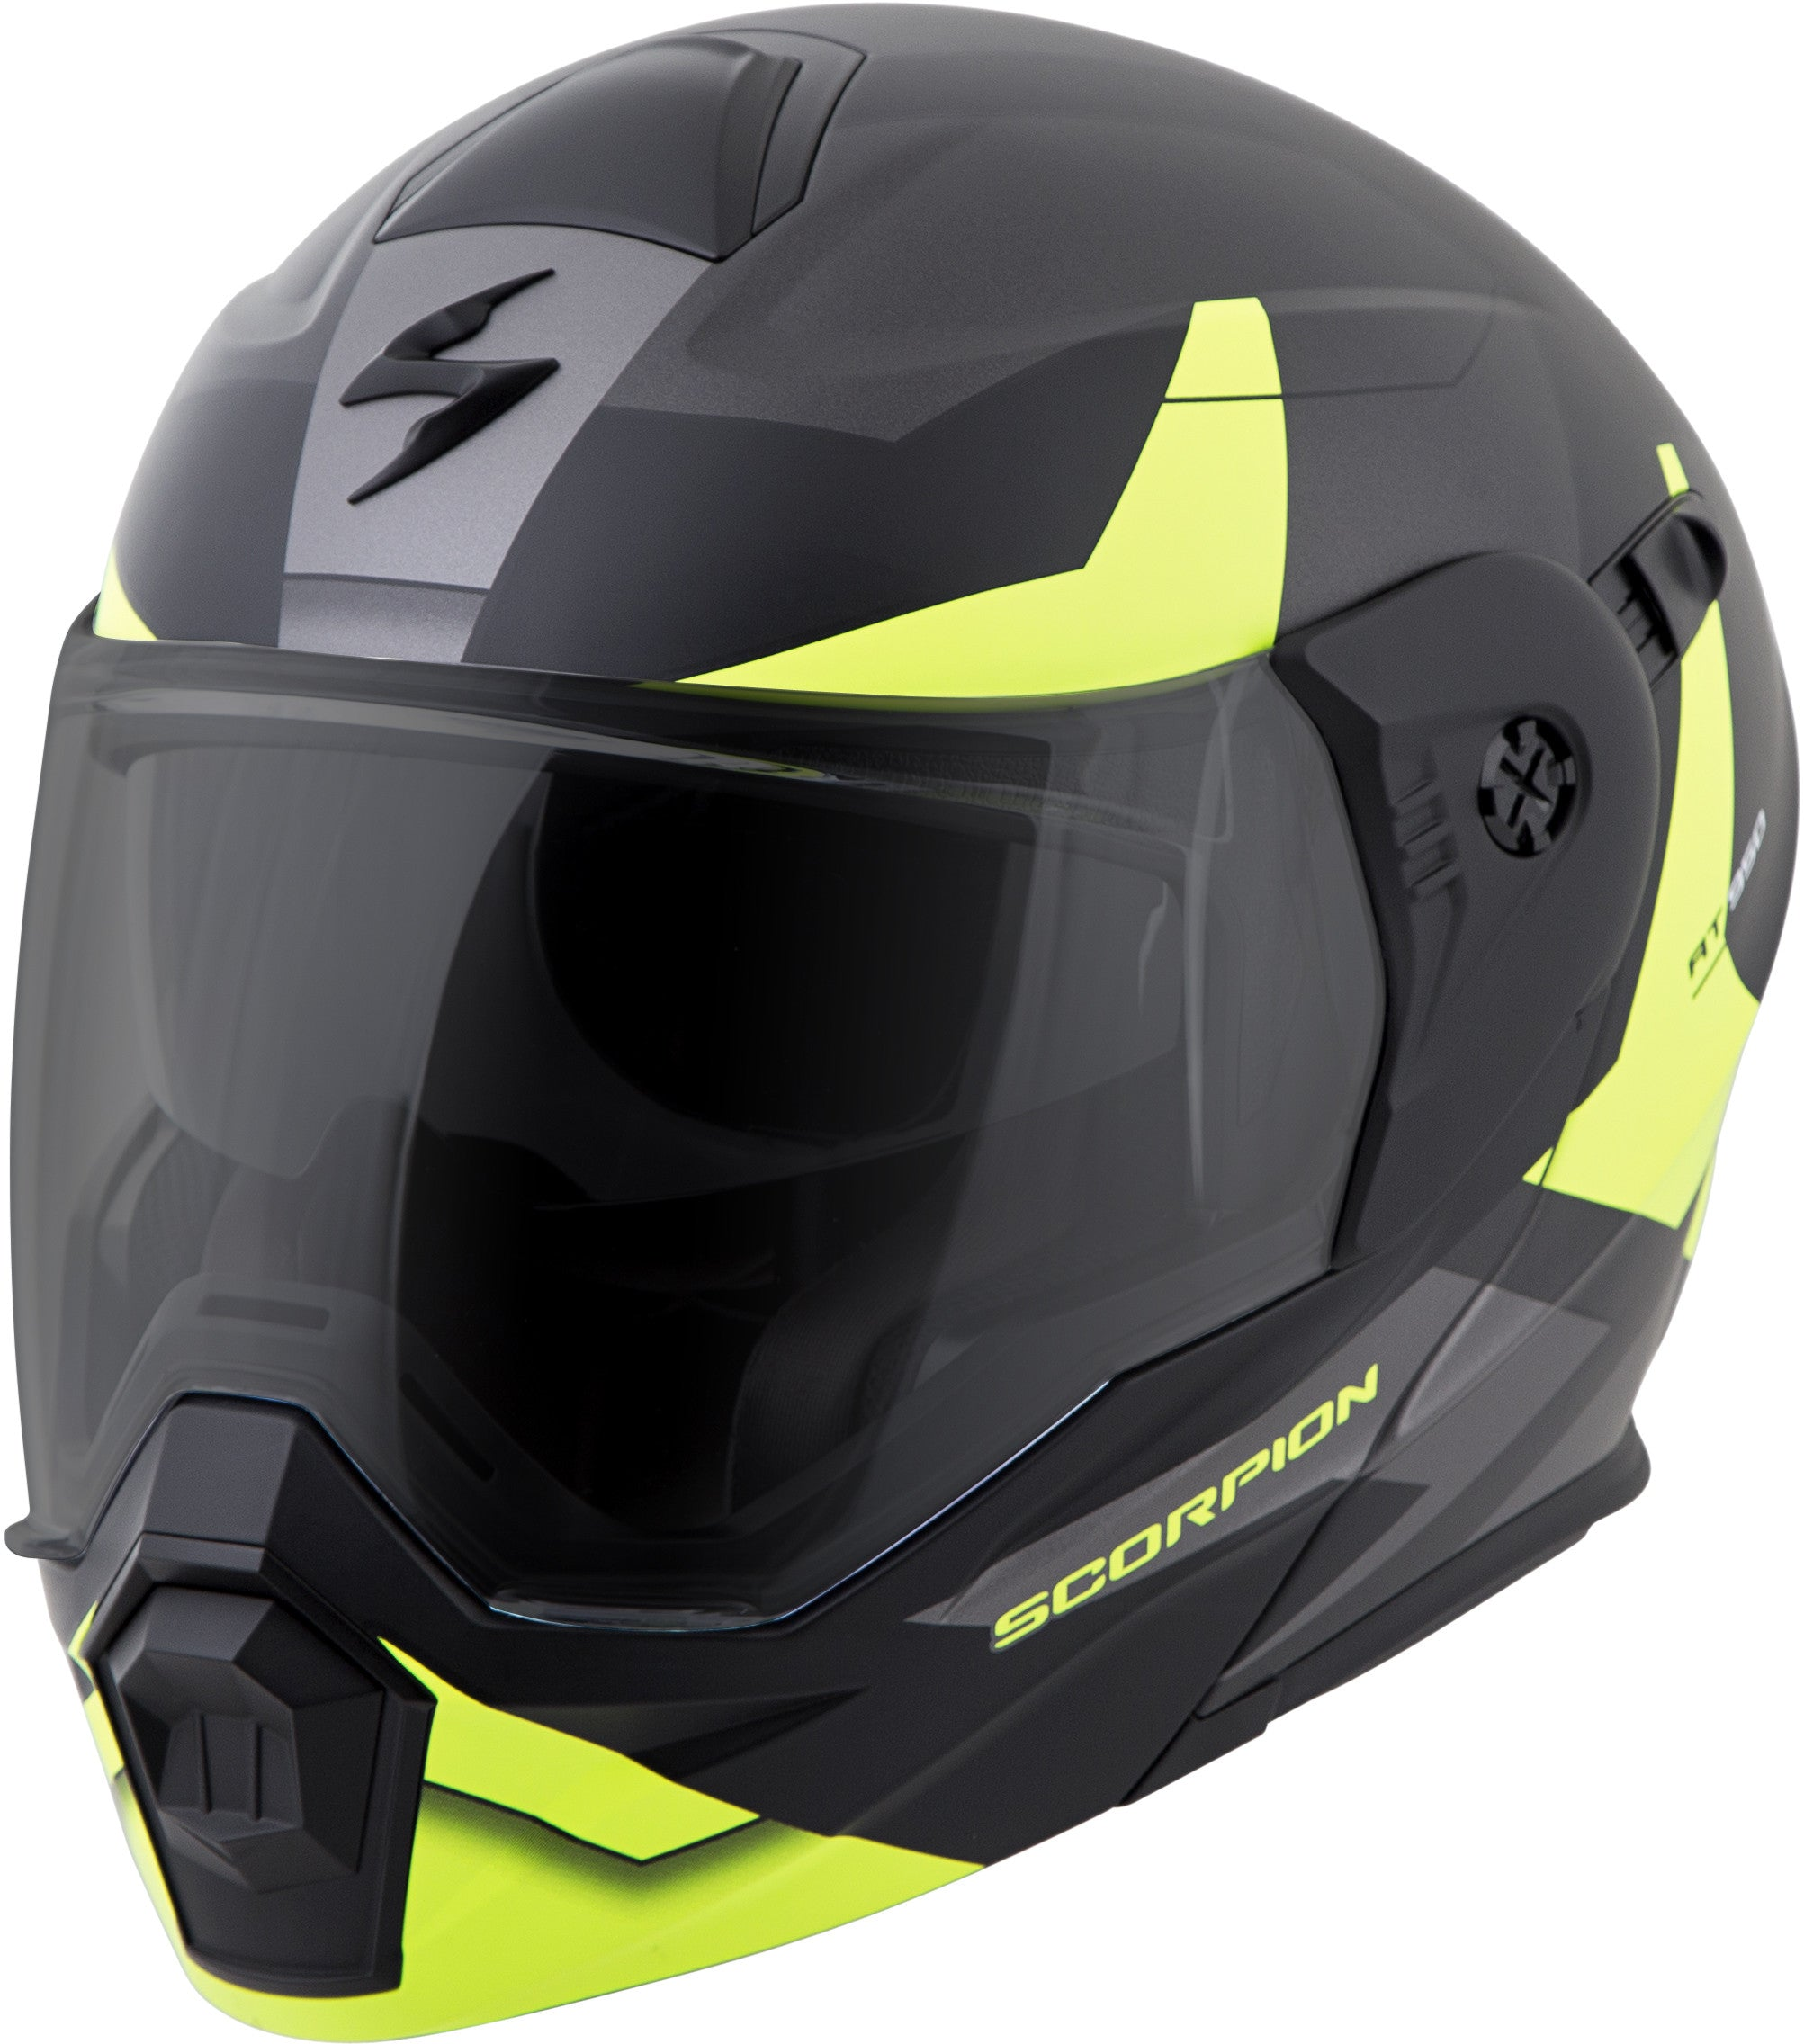 Scorpion Sports, Inc Exo-At950 Cold Weather Helmet W/Dual Pane Shield Hi-Vis - Scorpion Sports - Motorcycle Dot